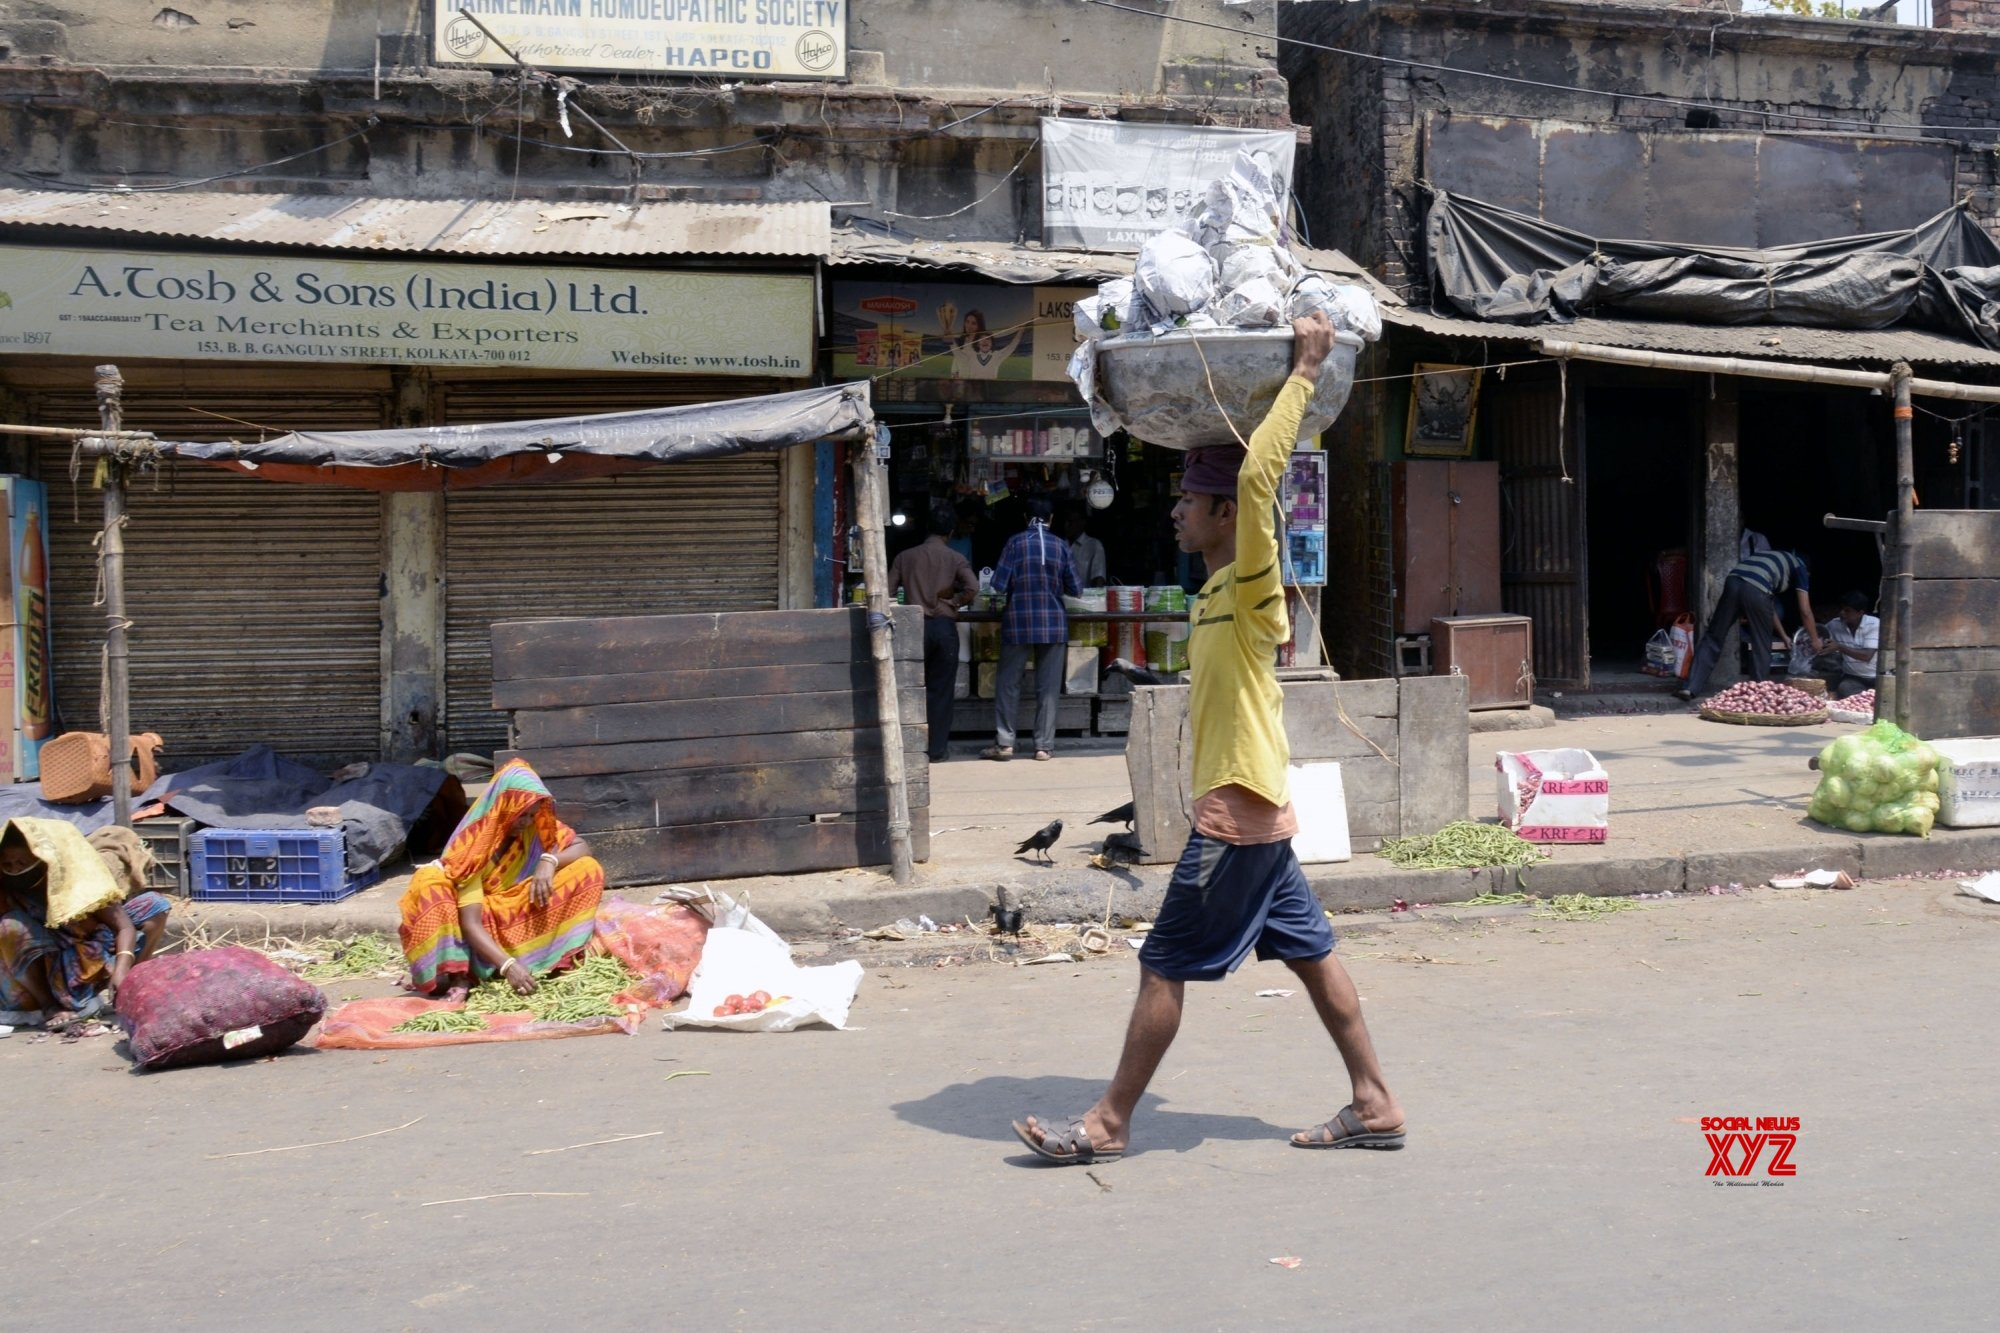 Kolkata: City during Day 8 of nationwide lockdown over COVID - 19 pandemic #Gallery